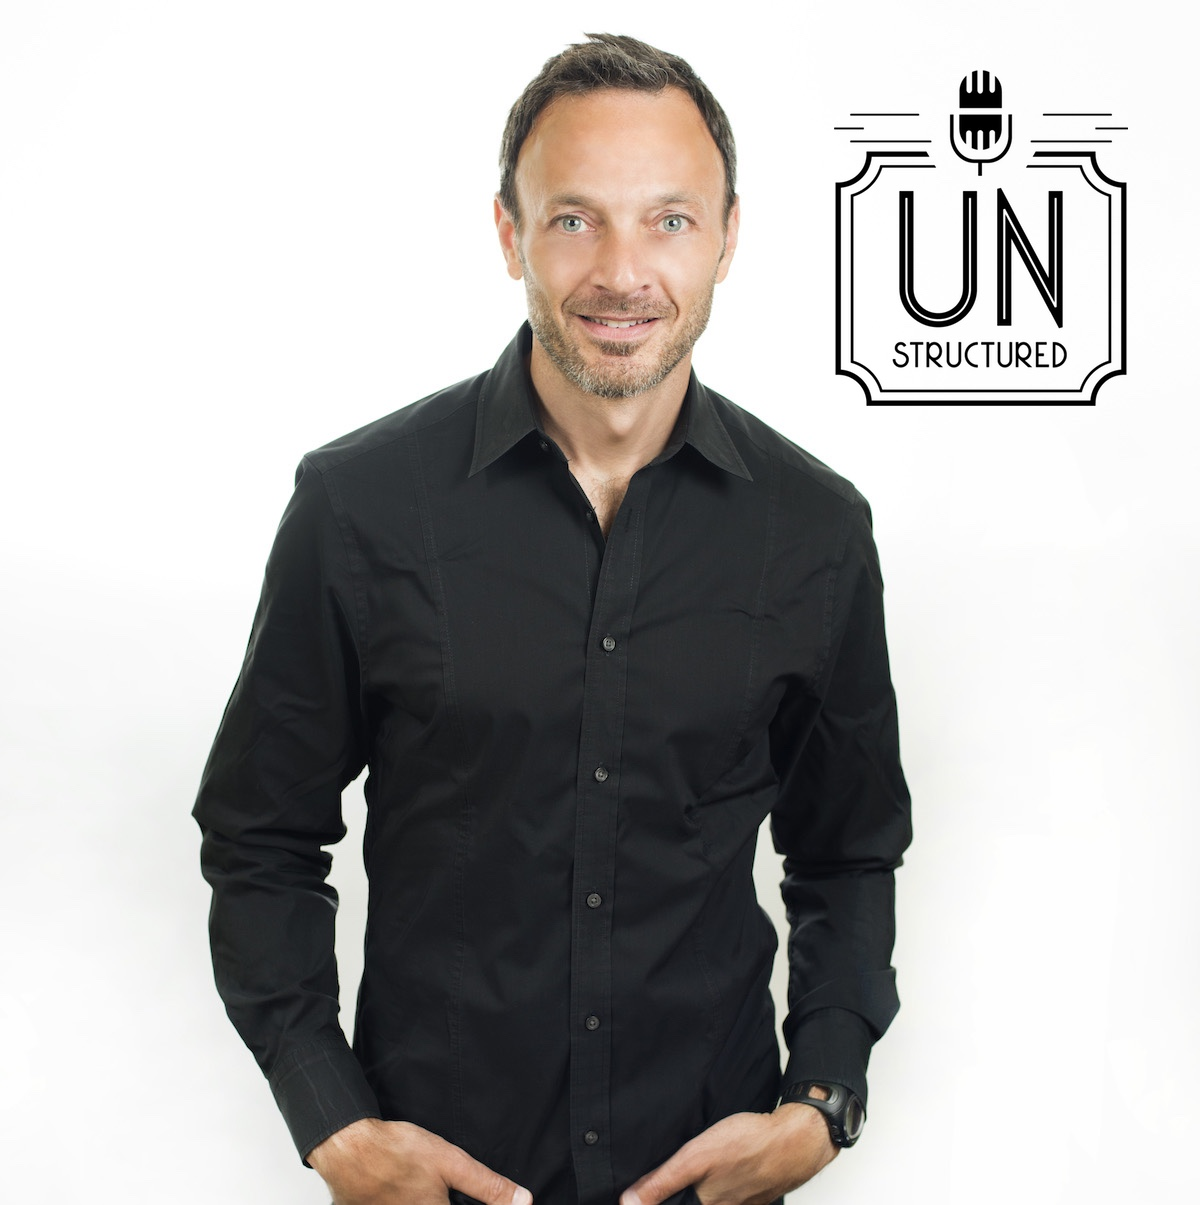 072 - David Goldberg - Unique wide-ranging and well-researched unstructured interviews hosted by Eric Hunley UnstructuredPod Dynamic Informal Conversations